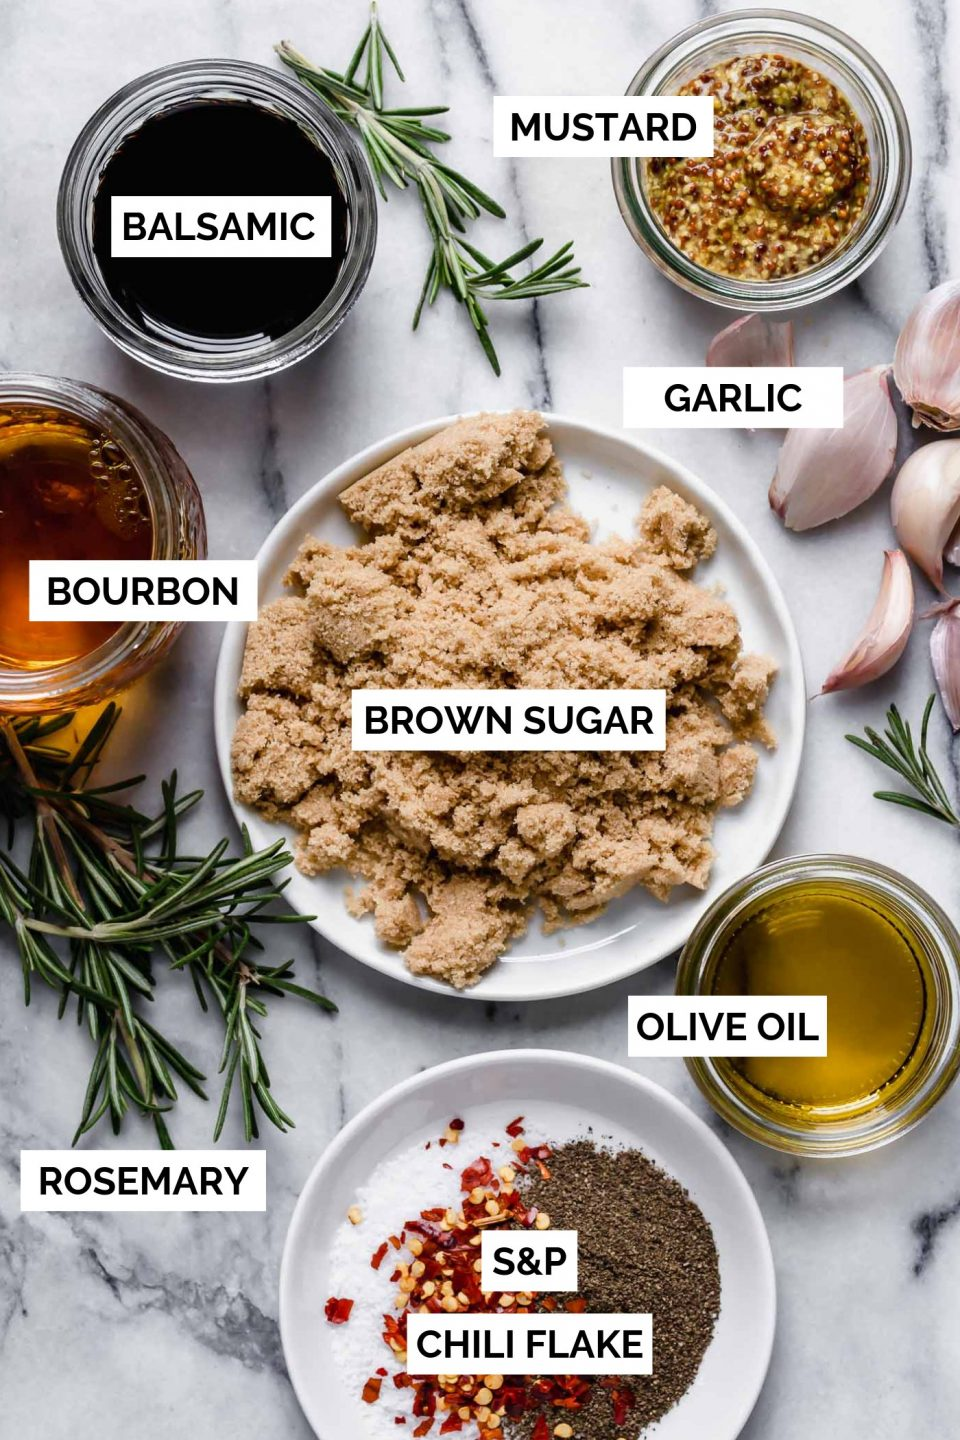 Brown sugar bourbon marinade ingredients arranged in multiple jars to show how to make brown sugar bourbon marinade